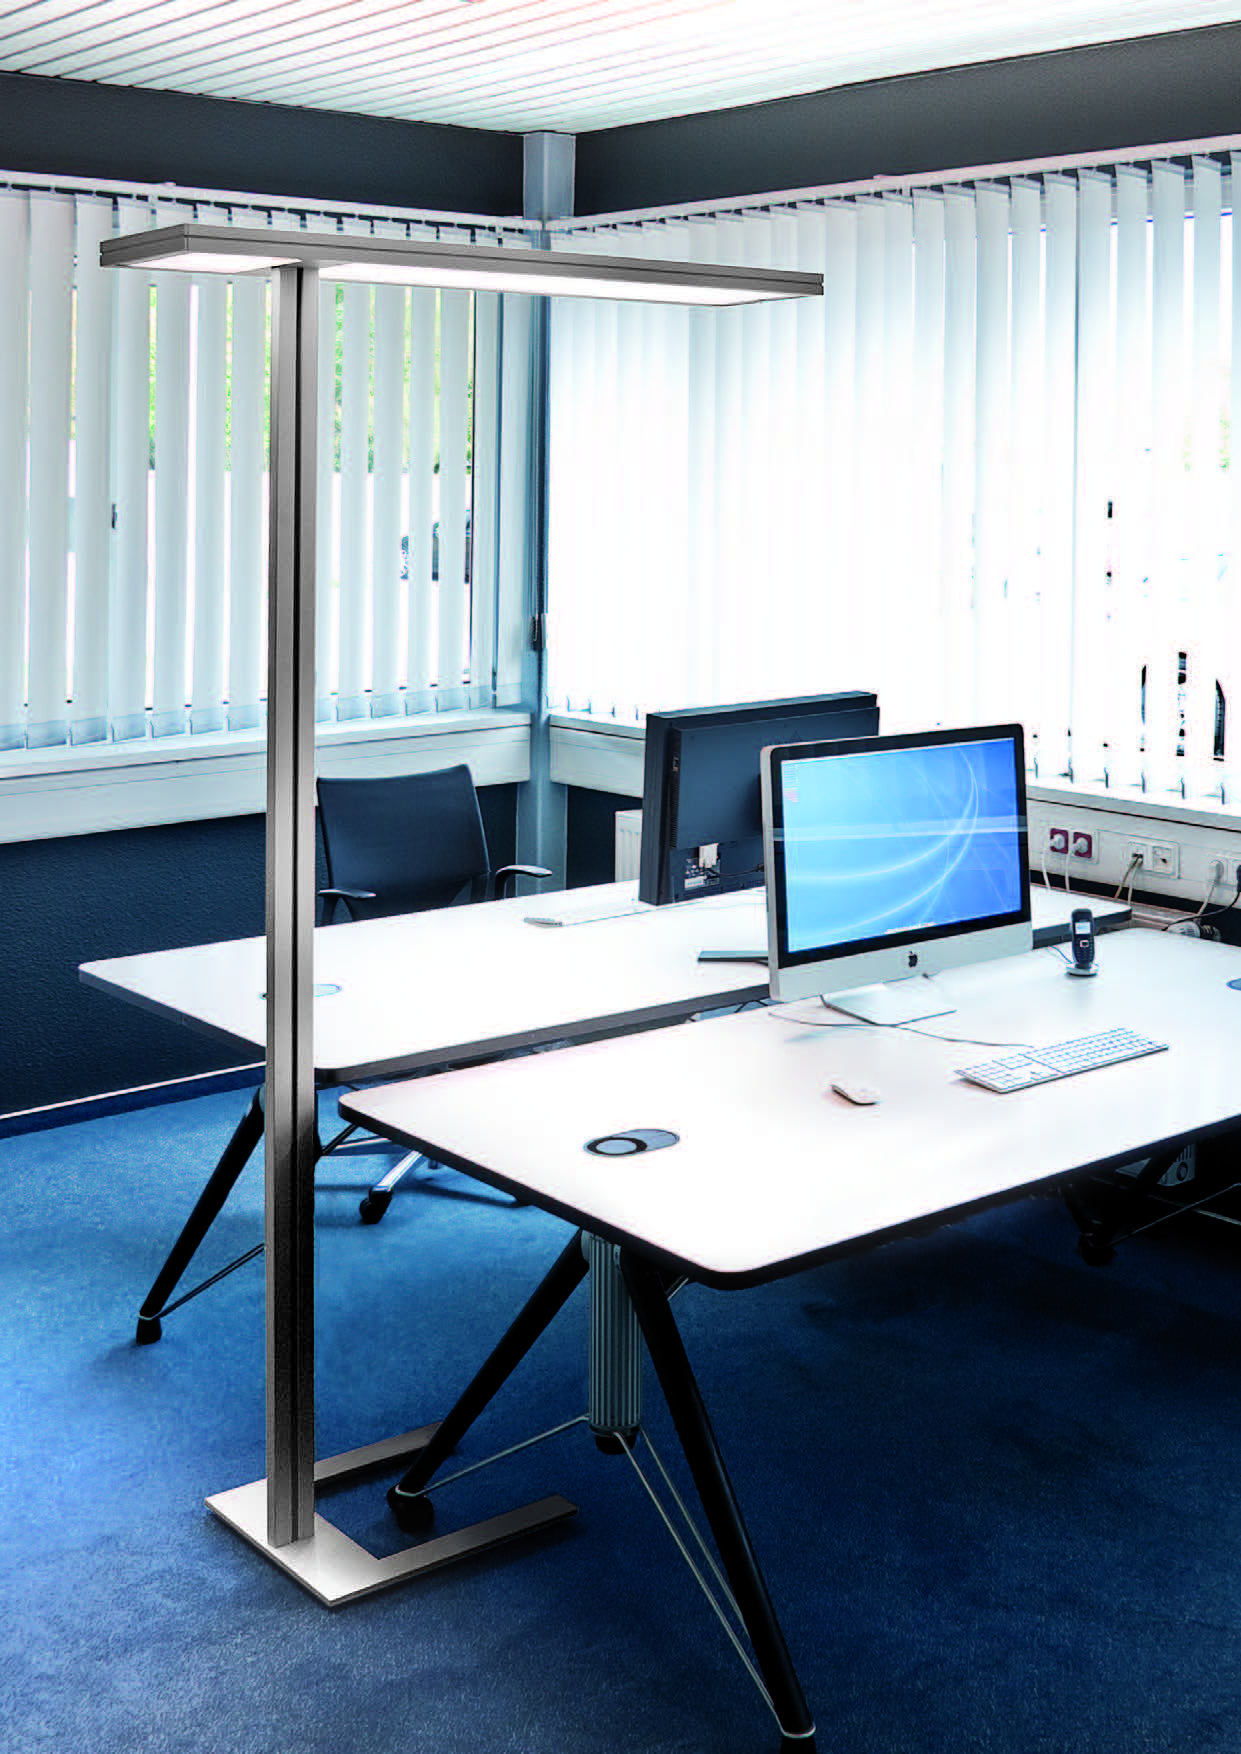 Indirect Direct Task Lighting From A Floor Mounted Fixture